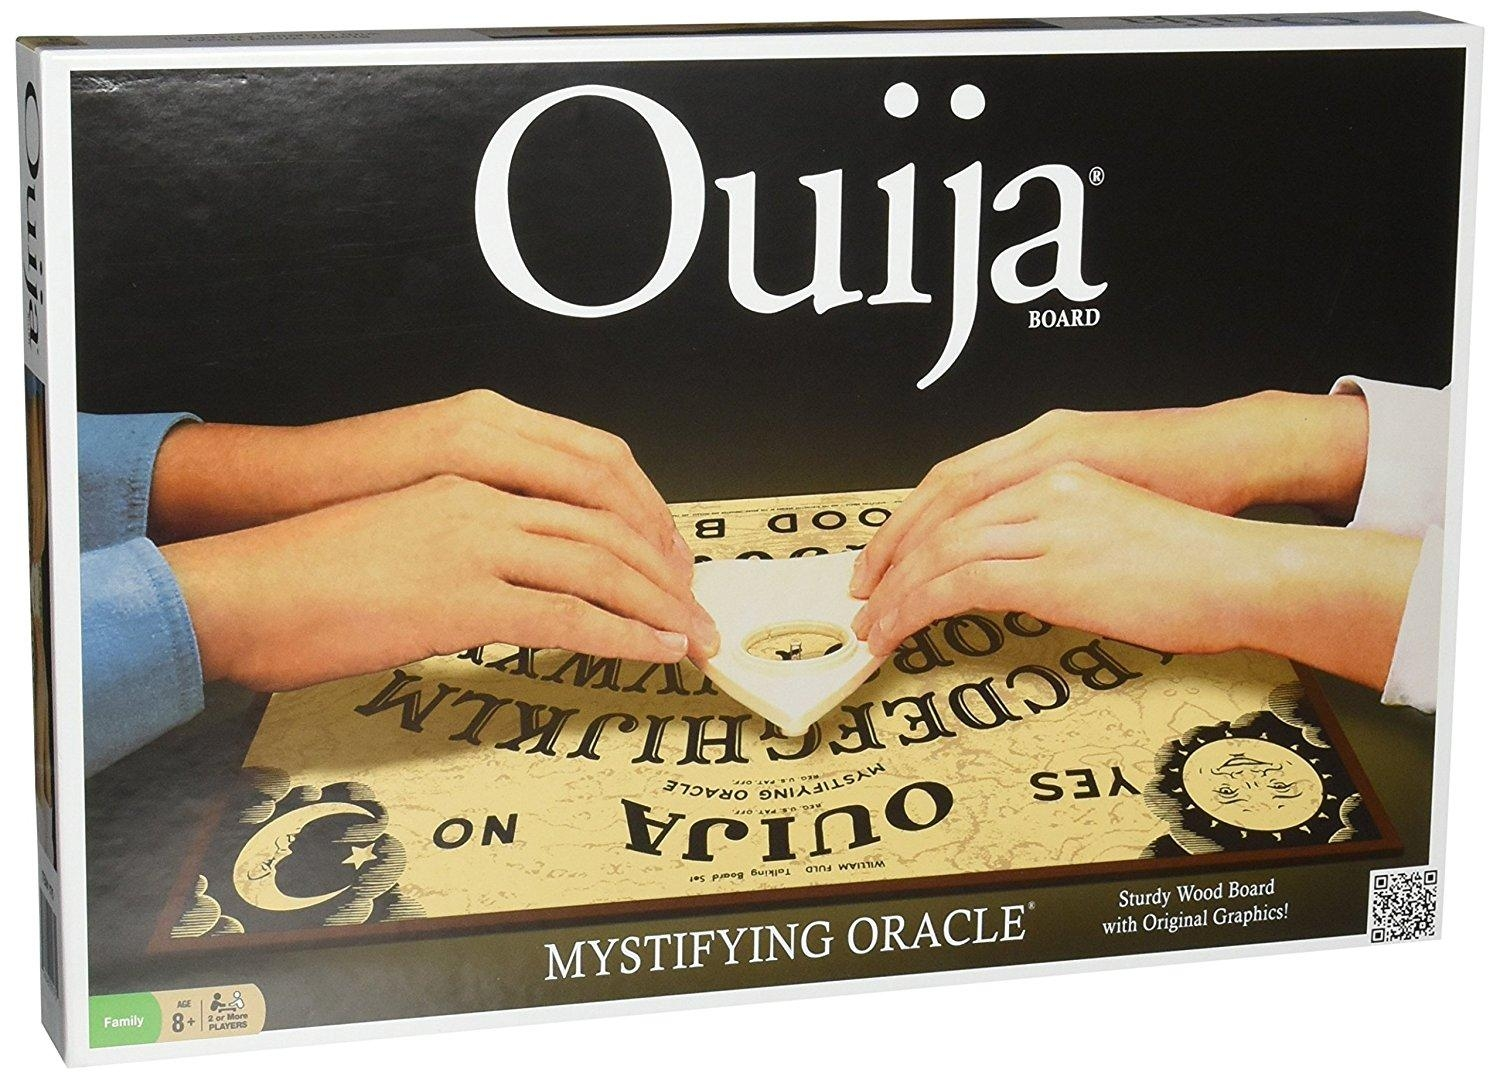 Ouija Boards Intended For Ouija Board Wall Art (View 16 of 20)